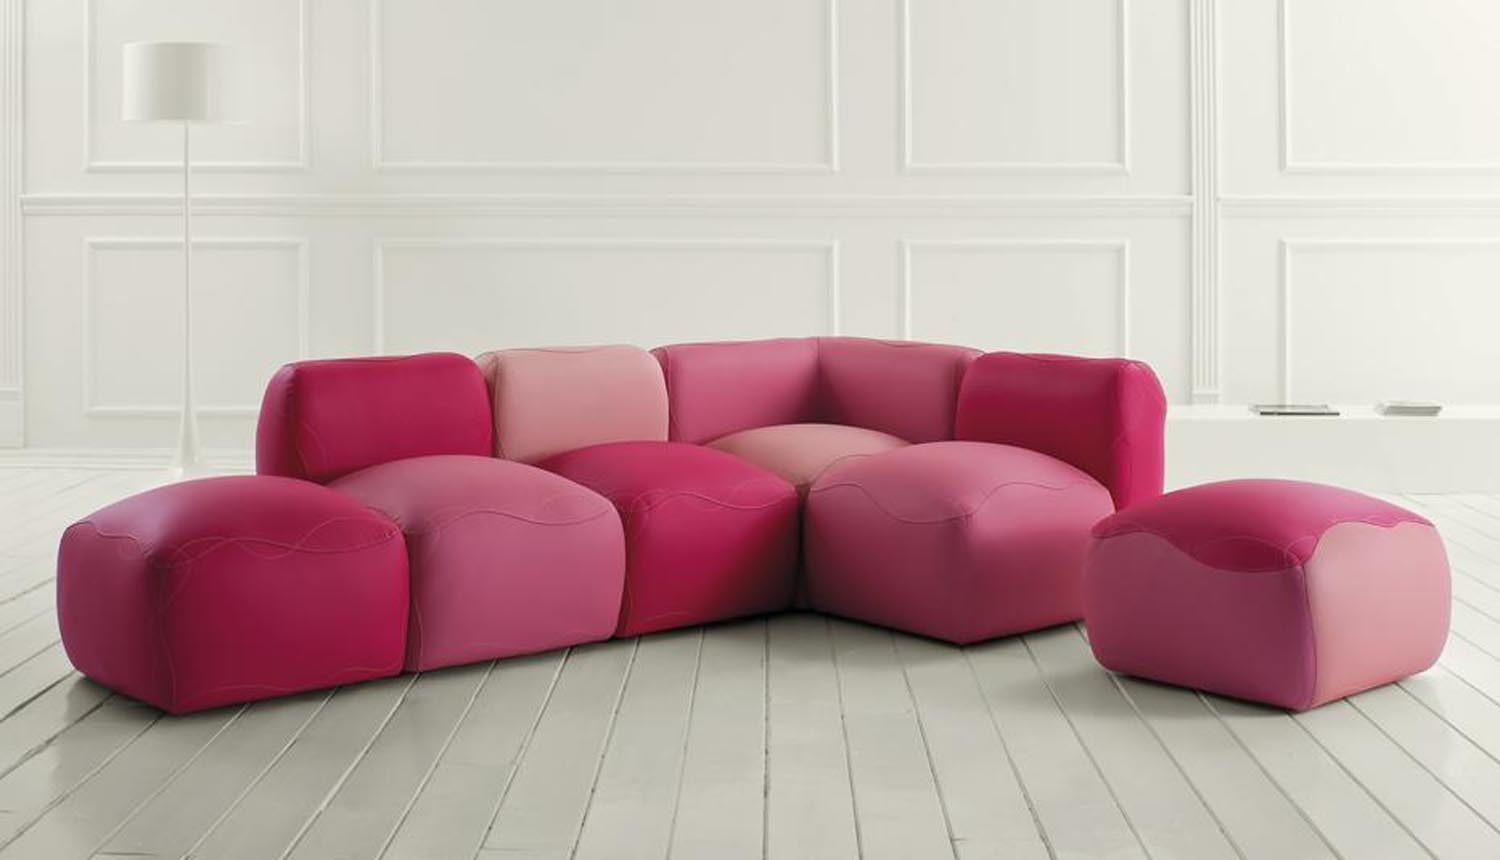 Fun and unique sofa designs Sofa design ideas photos